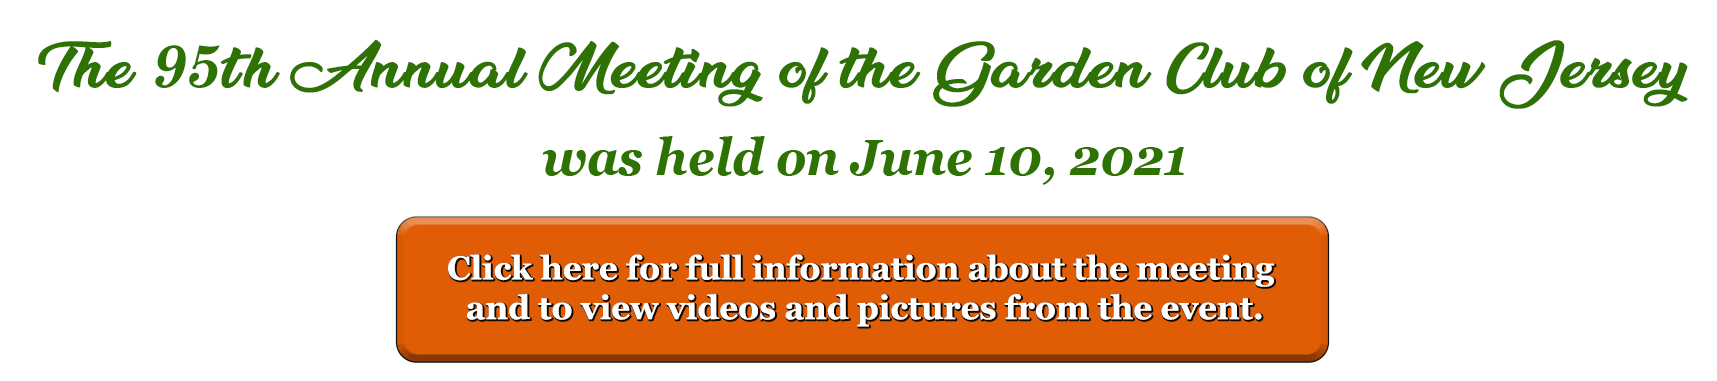 click to view annual meeting info